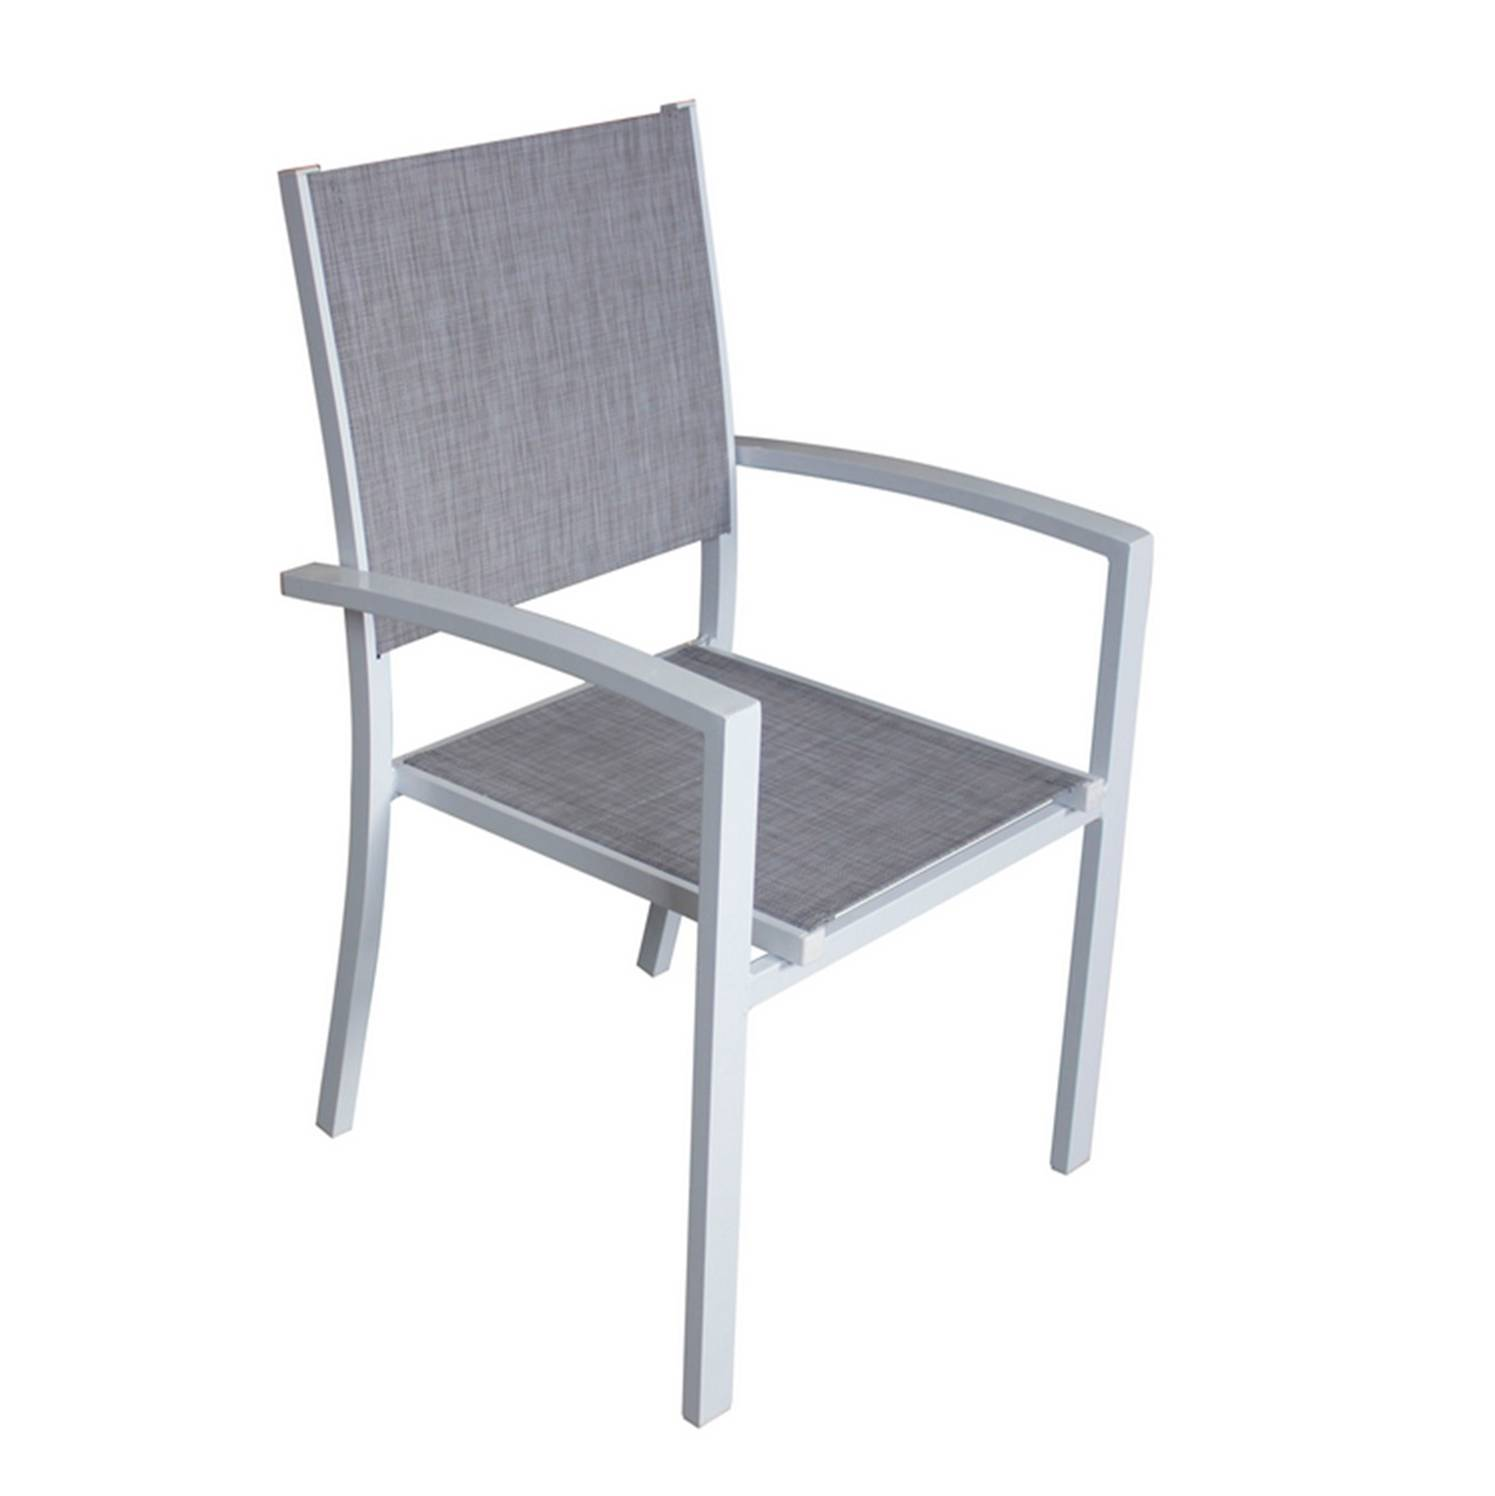 Aluminium Office Dinning chair living room chair outdoor chairs